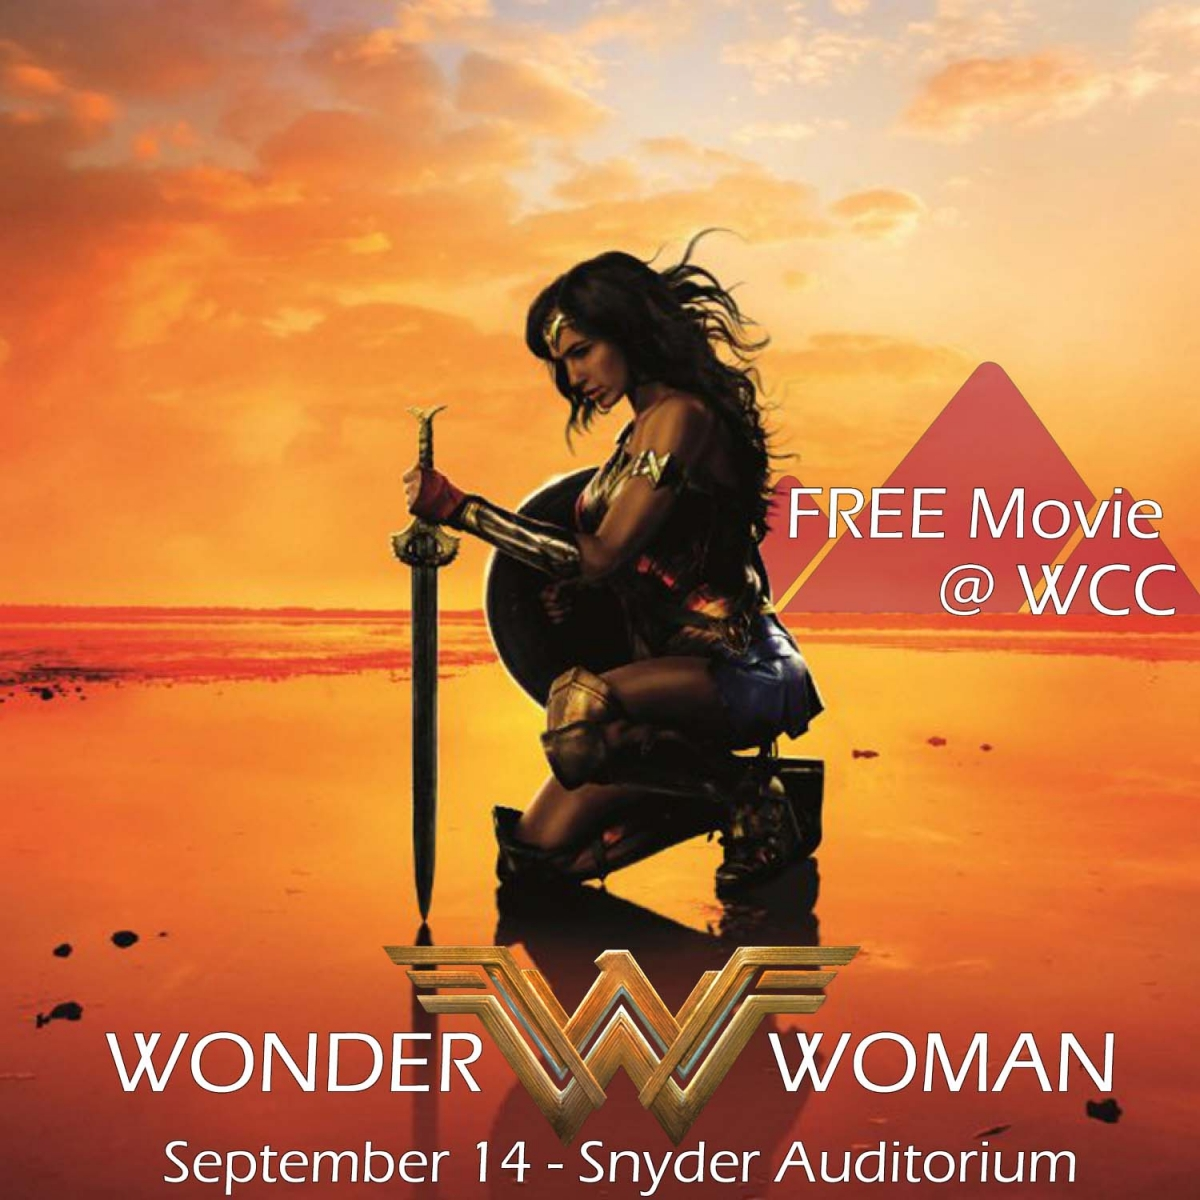 Free Movie at WCC Wonder Woman September 14 Snyder Auditorium